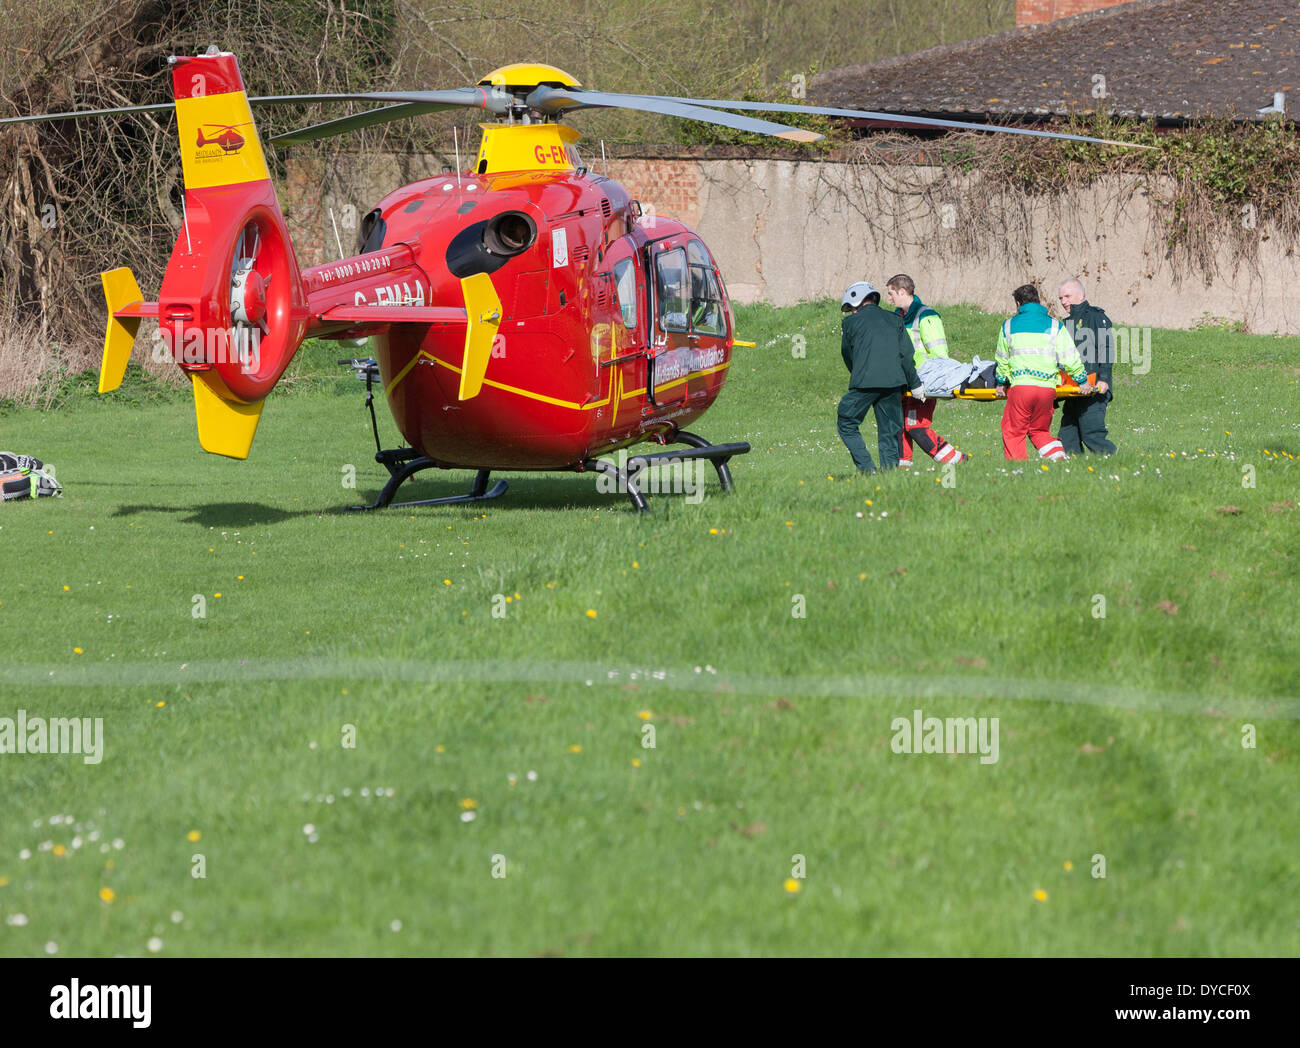 A casualty being lifted aboard the Midlands Air Ambulance. - Stock Image